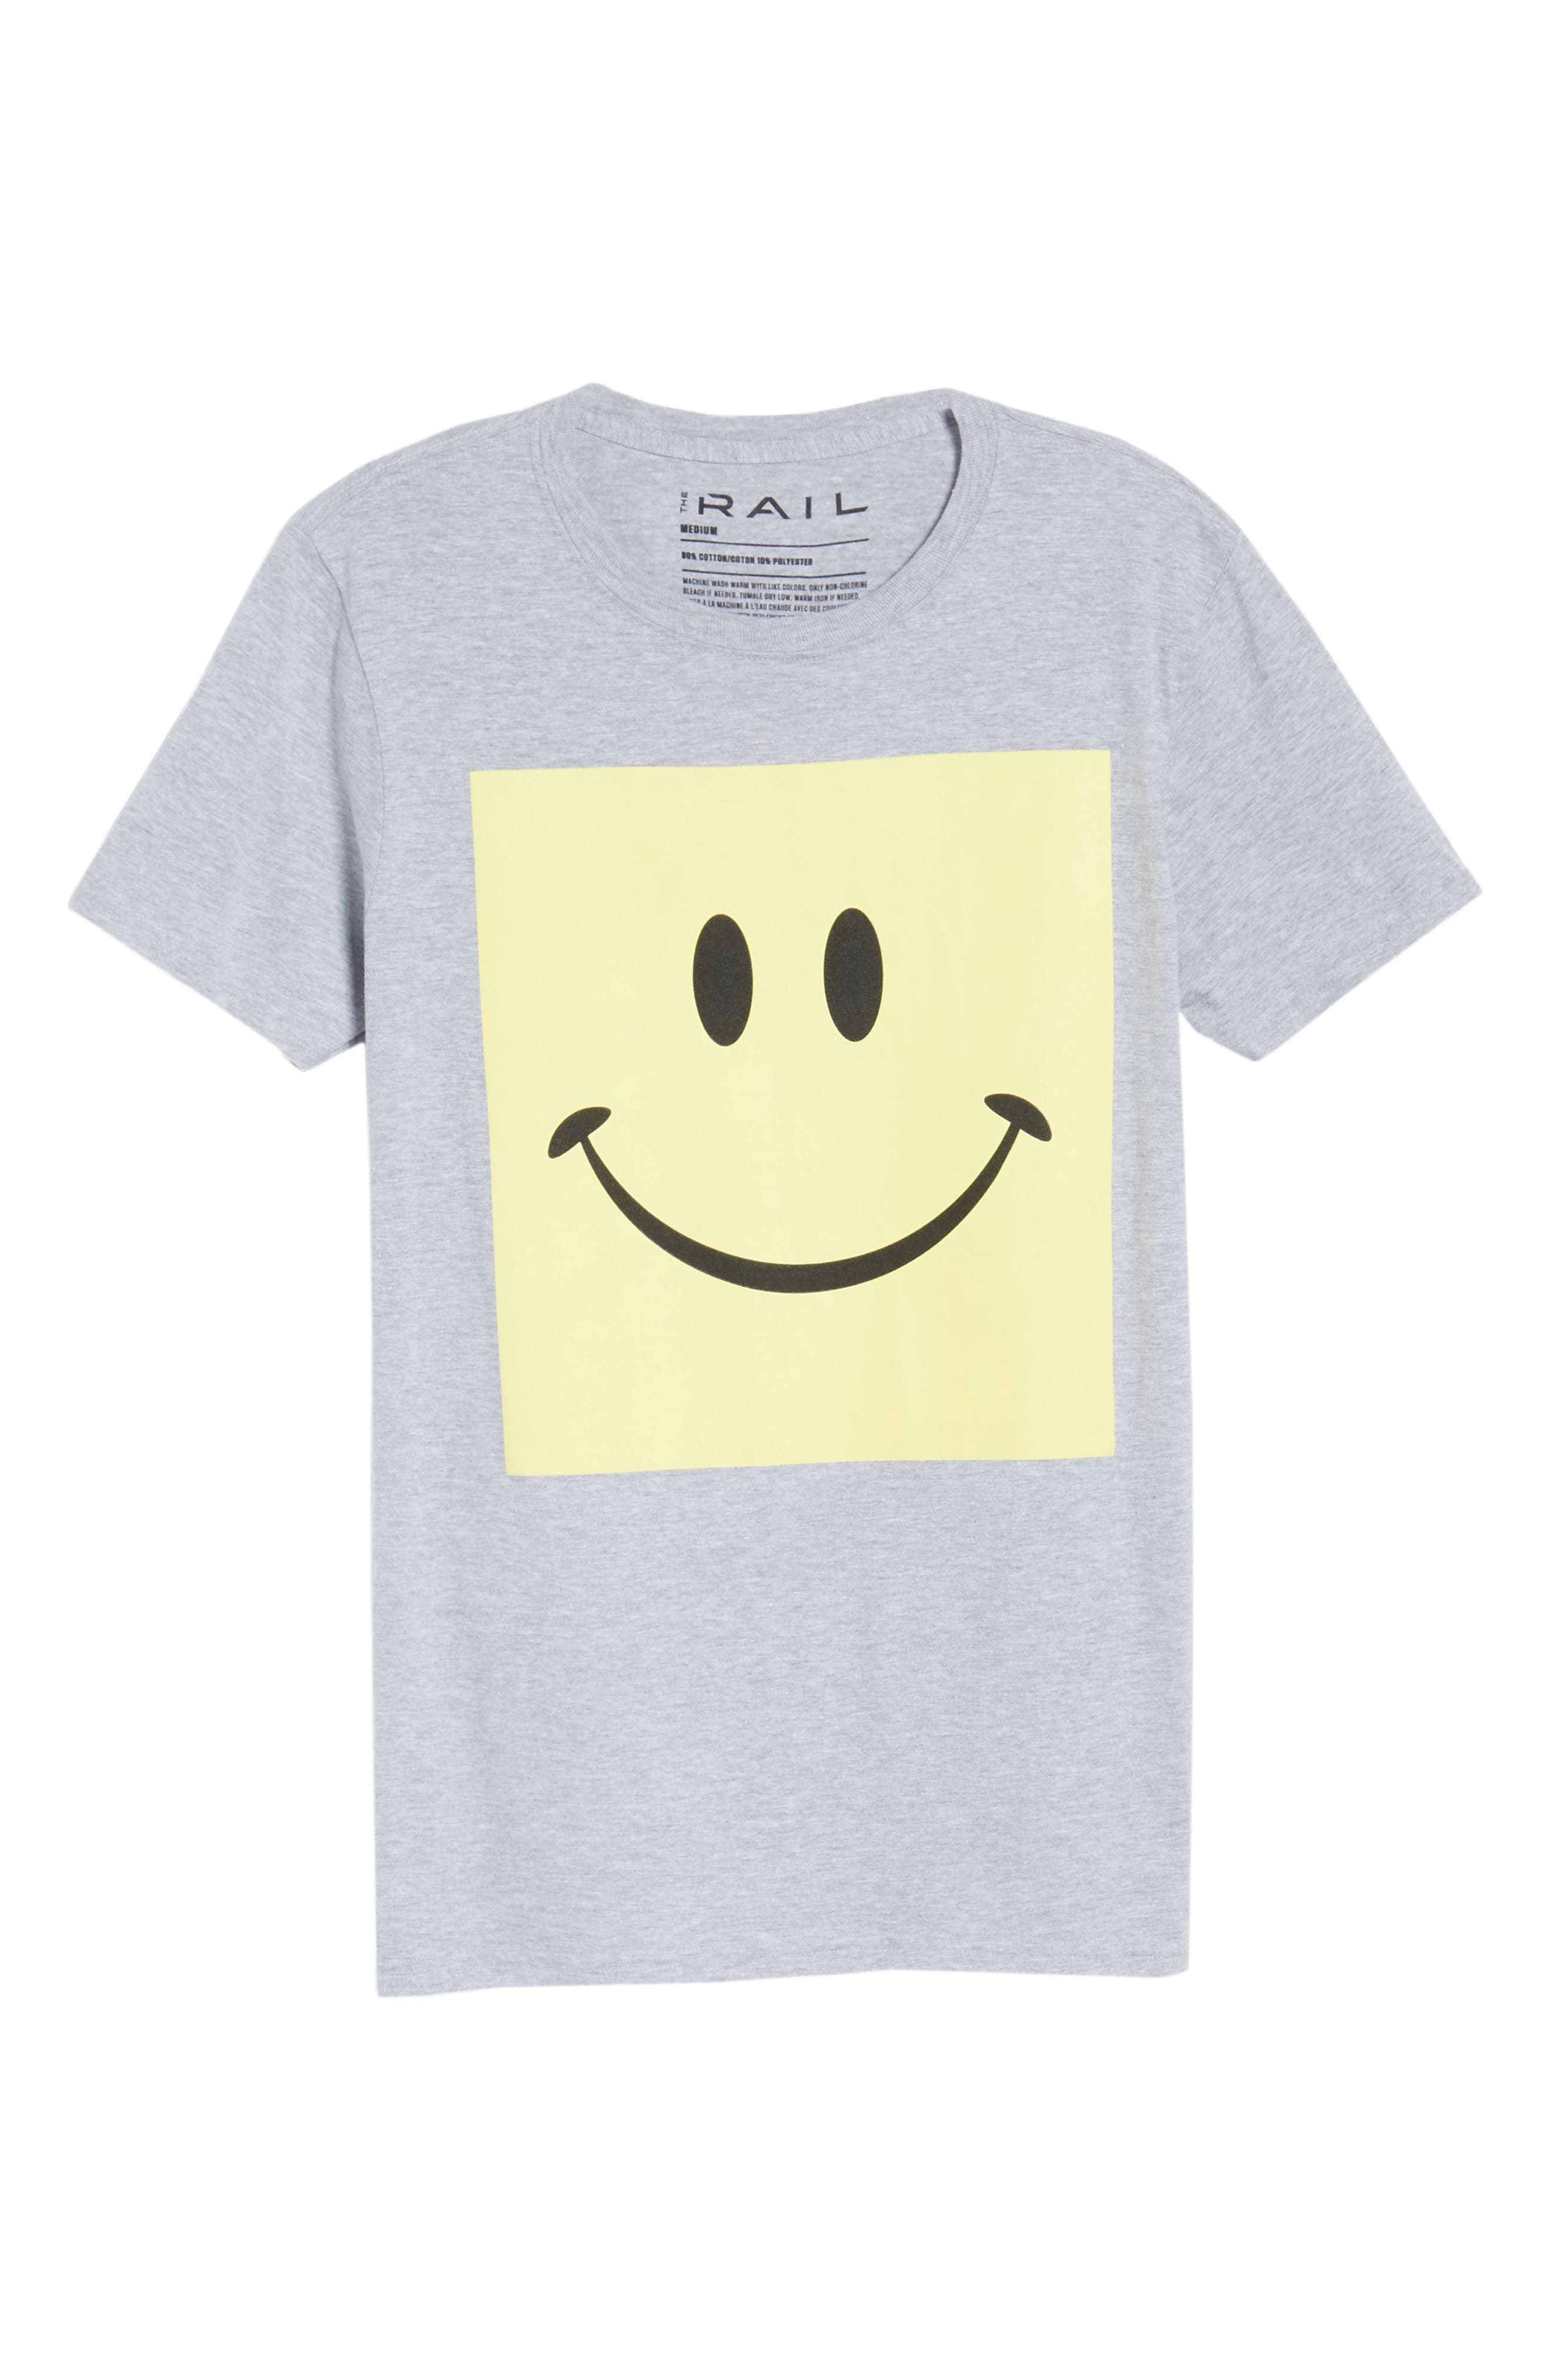 Box Smiley Graphic T-Shirt,                             Alternate thumbnail 6, color,                             Grey Heather Box Smile